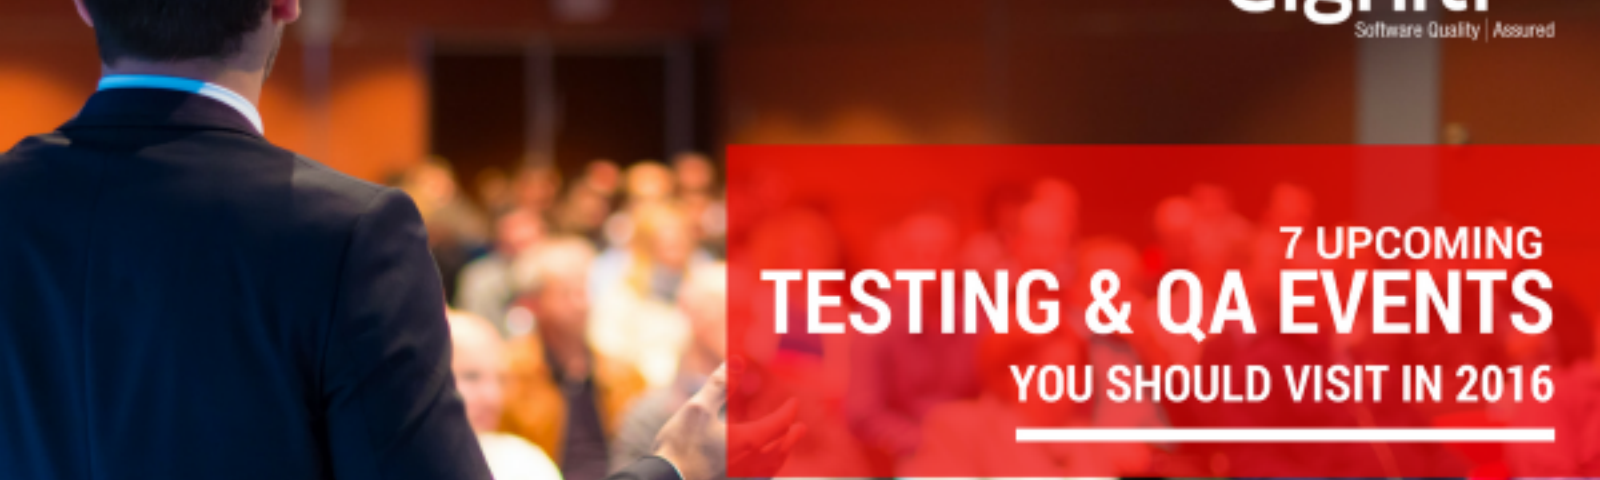 7 Upcoming Testing & QA Events You Should Visit in 2016